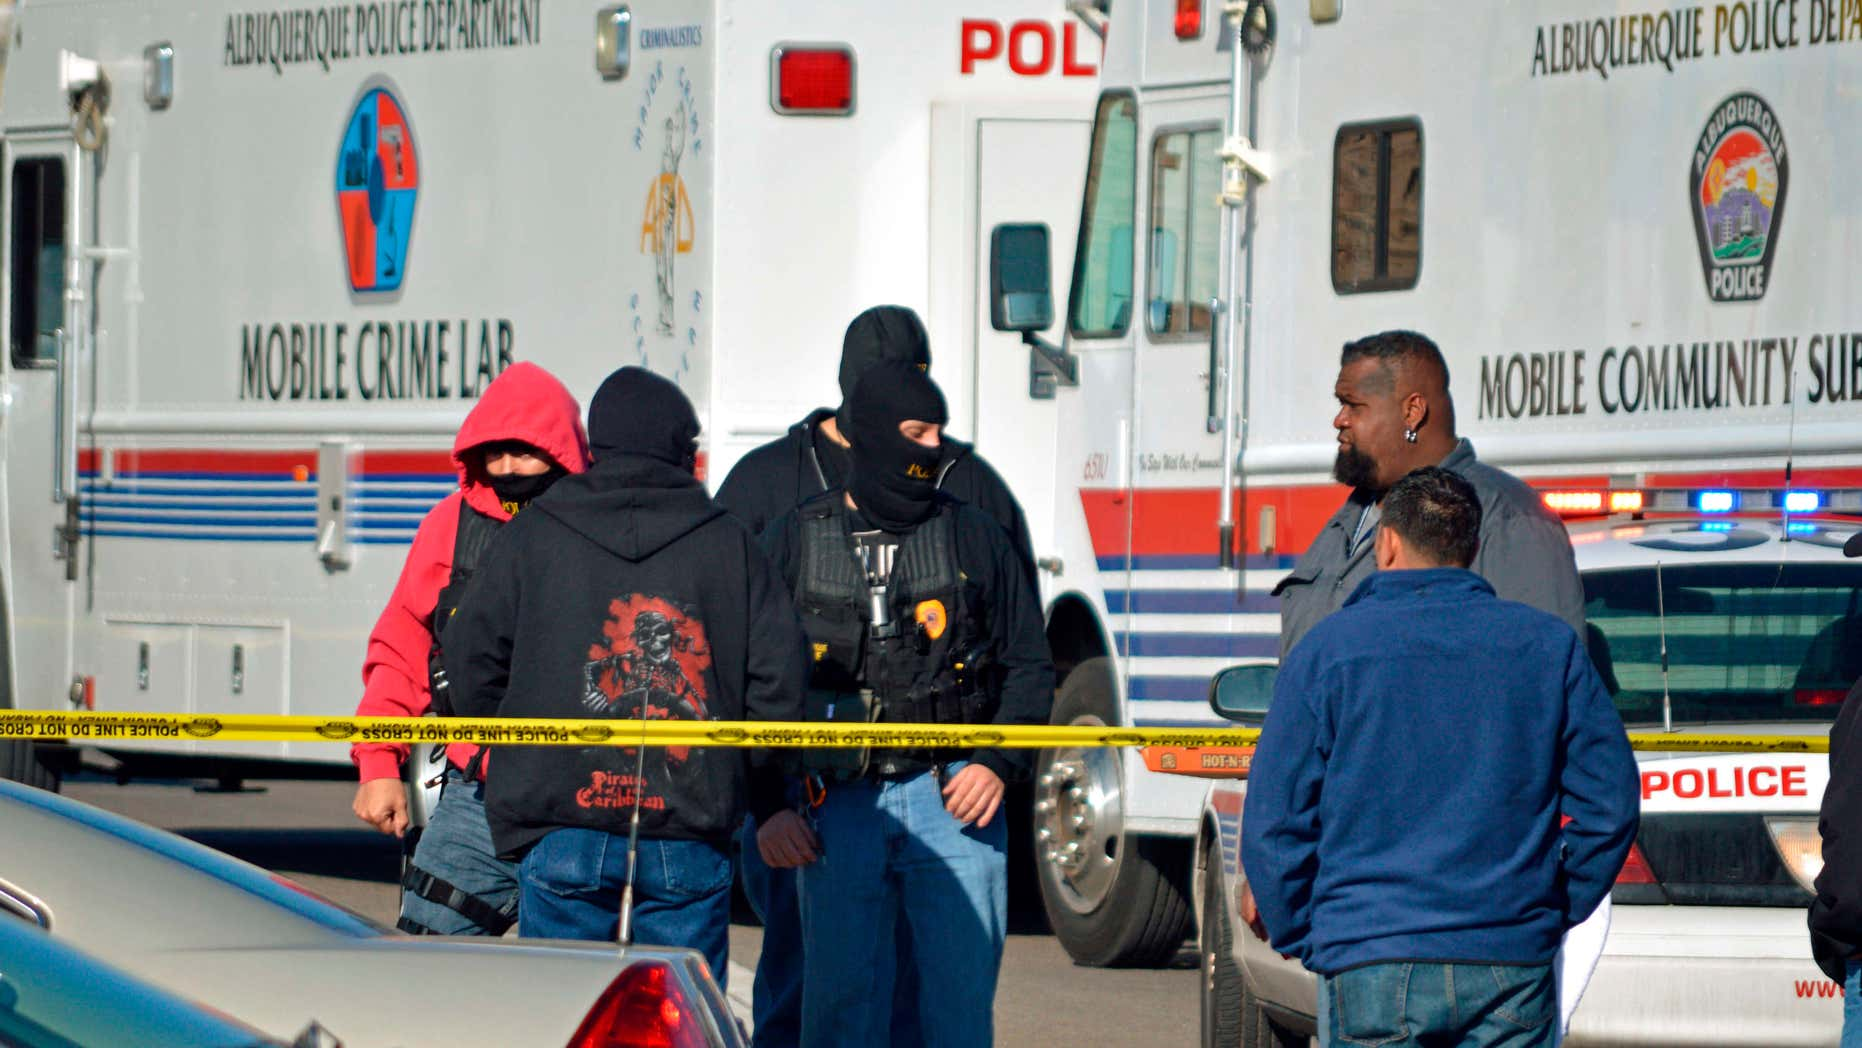 FILE - This Jan. 9, 2015 file photo, Investigators search a busy intersection in Albuquerque, N.M., after police say an undercover detective shot another undercover detective during a drug sting.